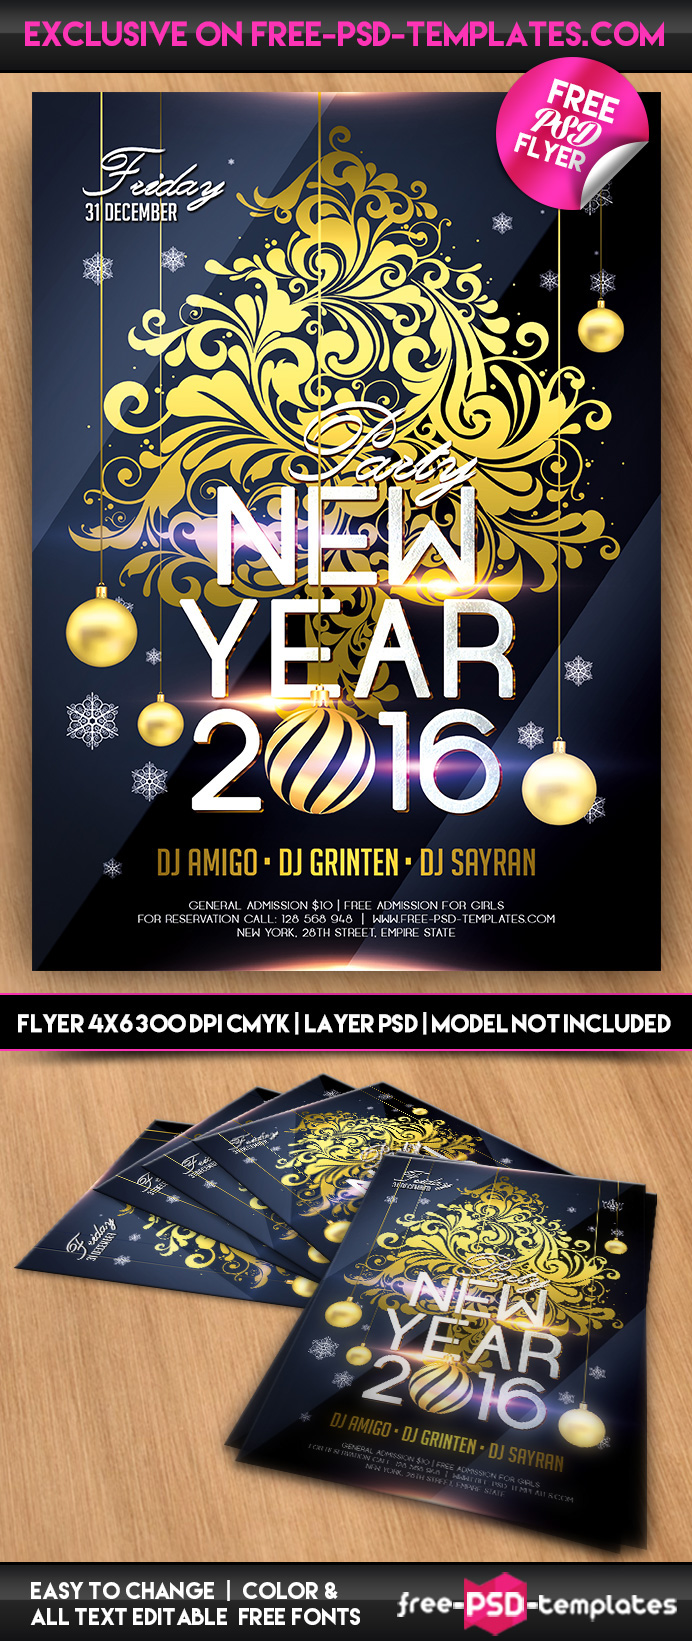 New Year 2016 Free PSD Flyer Template on Behance